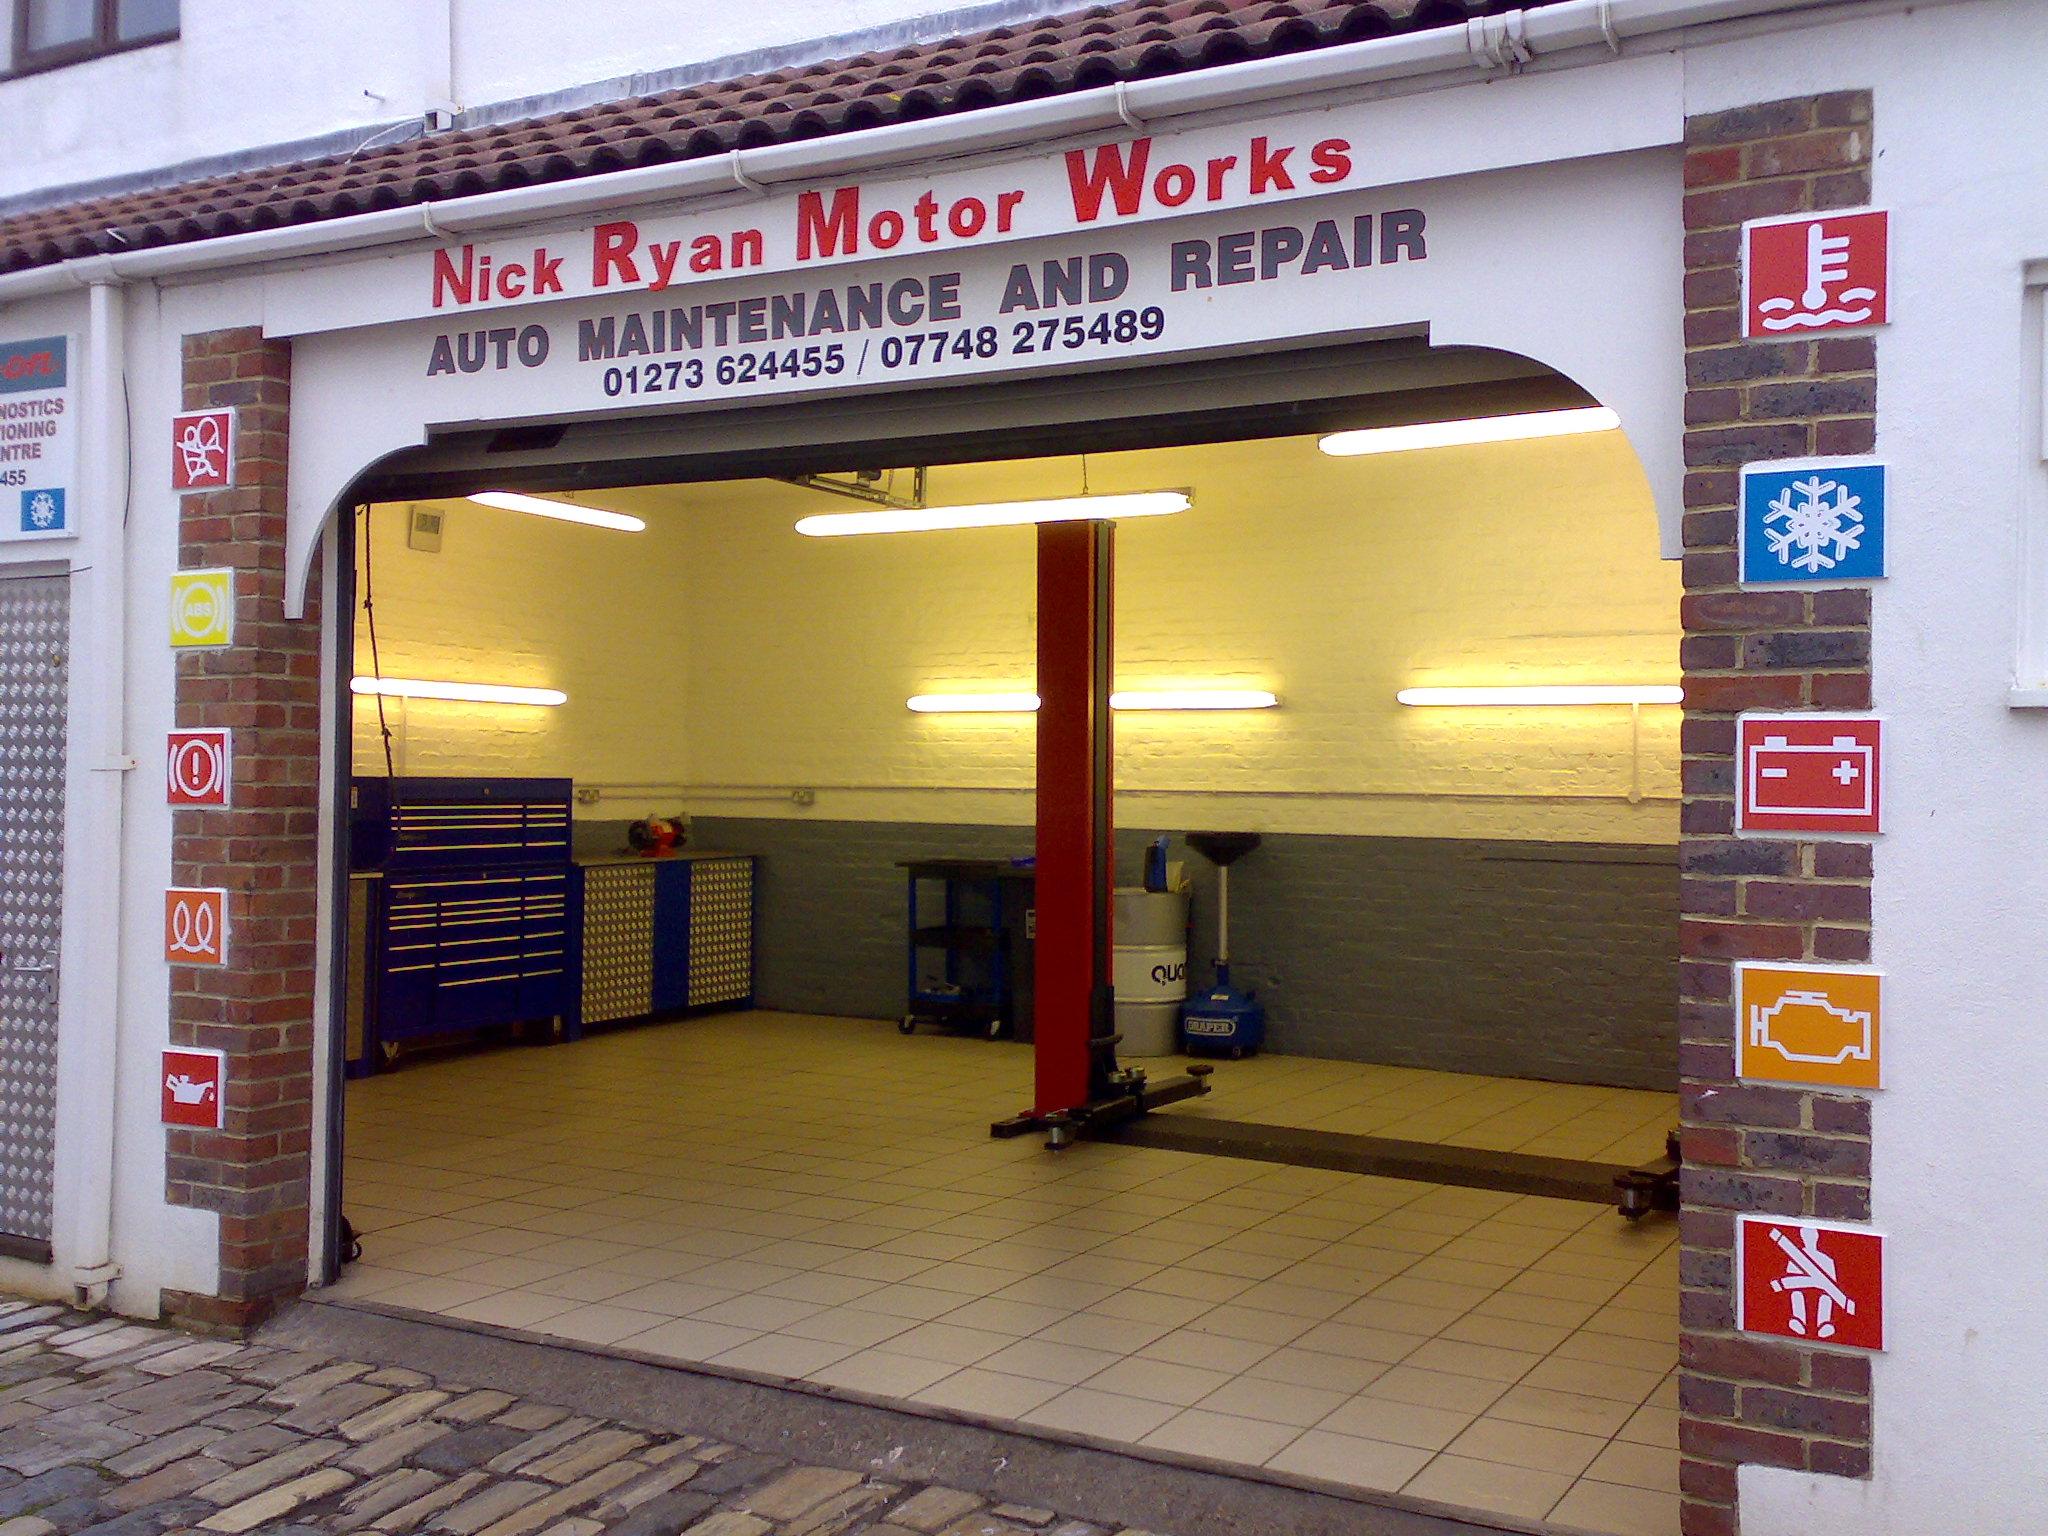 NICK RYAN MOTOR WORKS fourth image